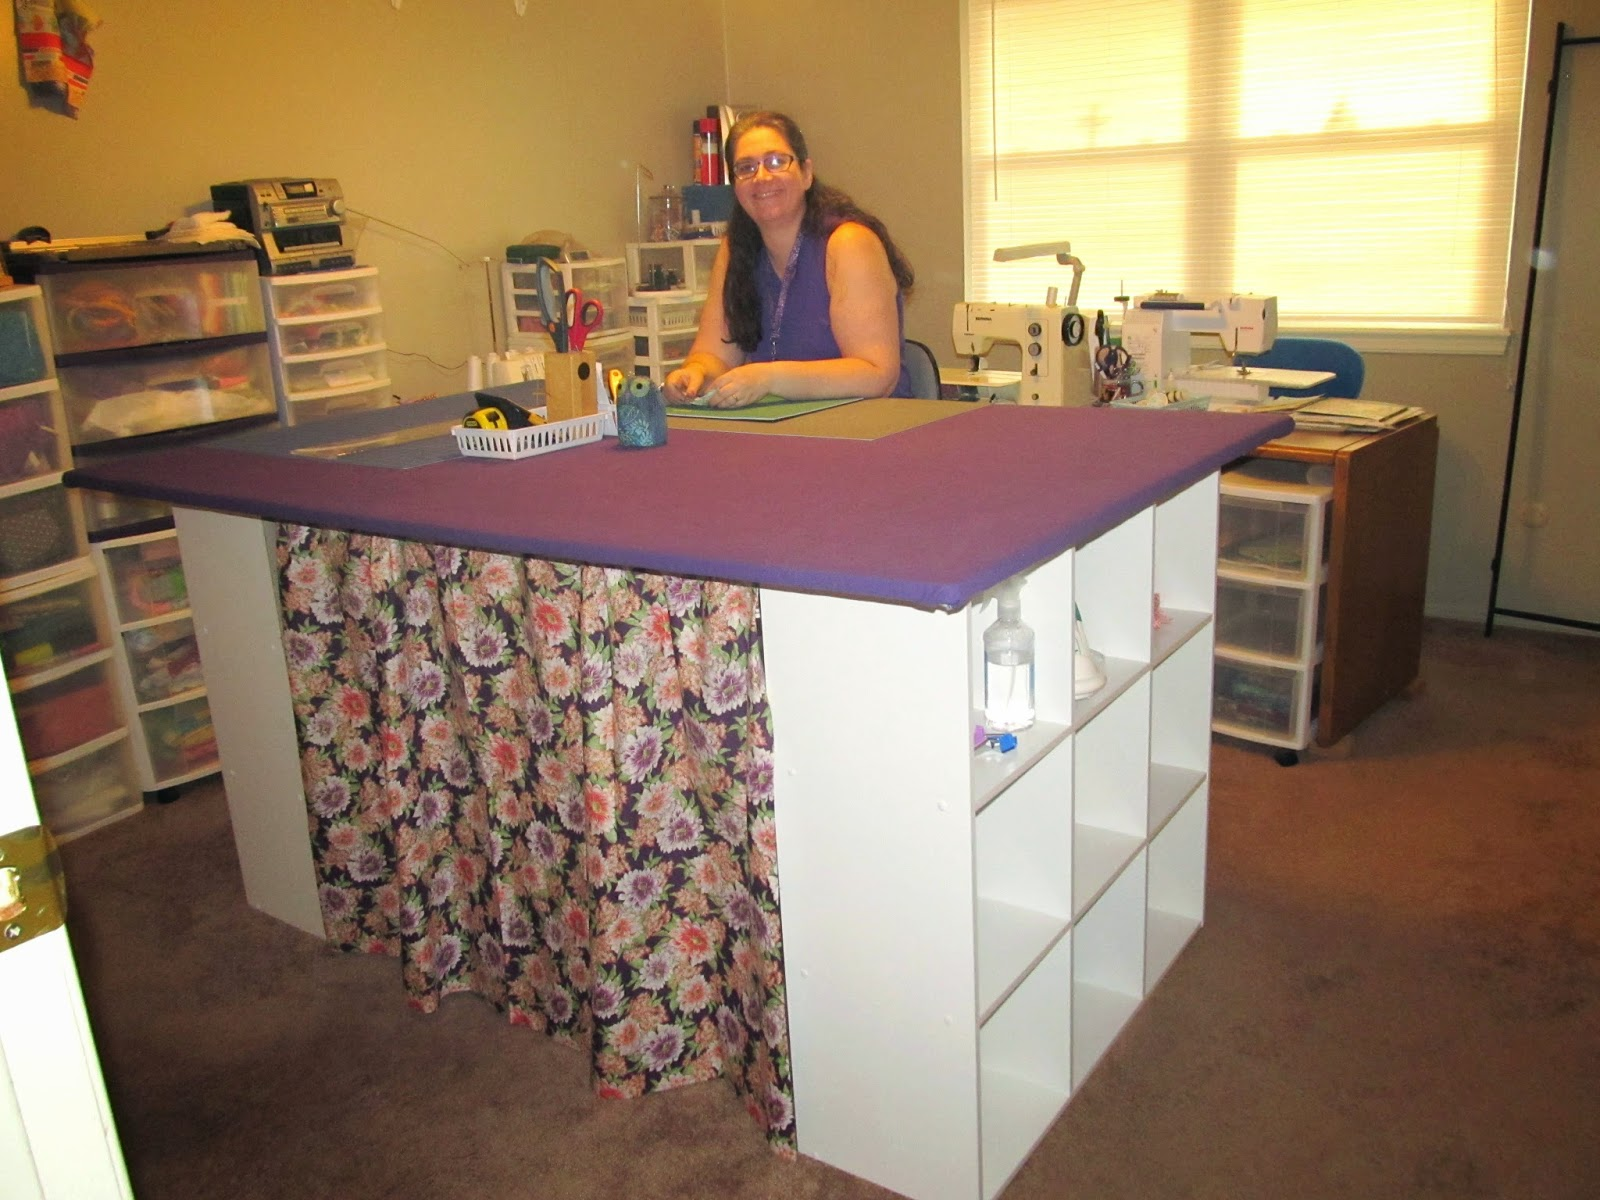 Diy cutting table - Ann S Quilt N Stuff My New 4 X 6 Foot Cutting Table Ironing Table We Built For About 200 Here Is A Step By Step Description Of How We Did It